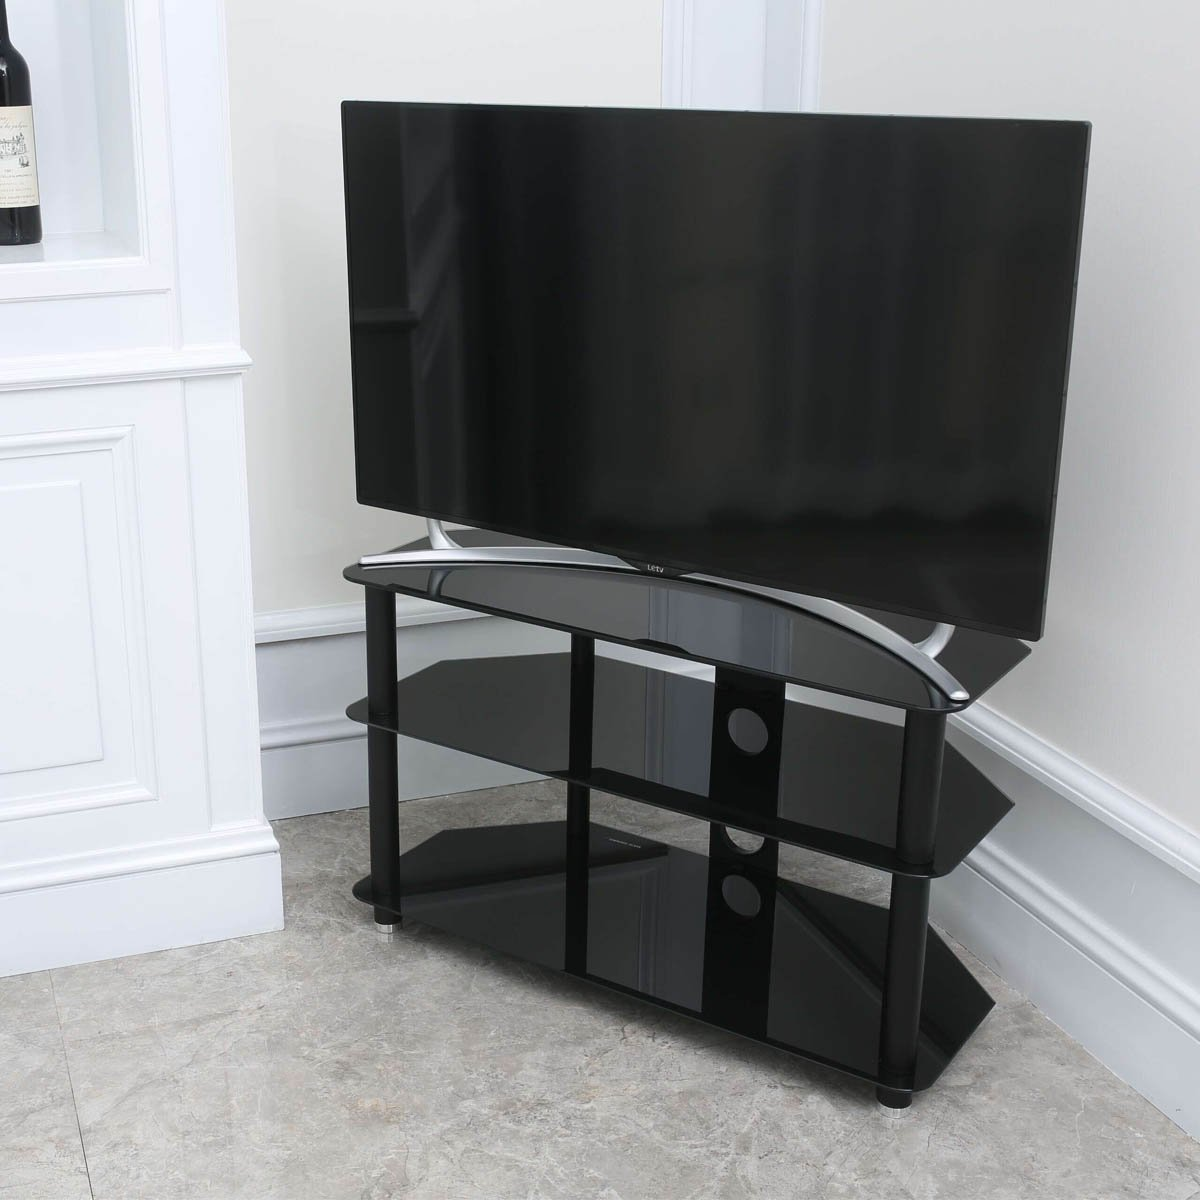 Stealth Mounts 1000mm Black Glass TV Stand For 3D/LED: Amazon.co ...